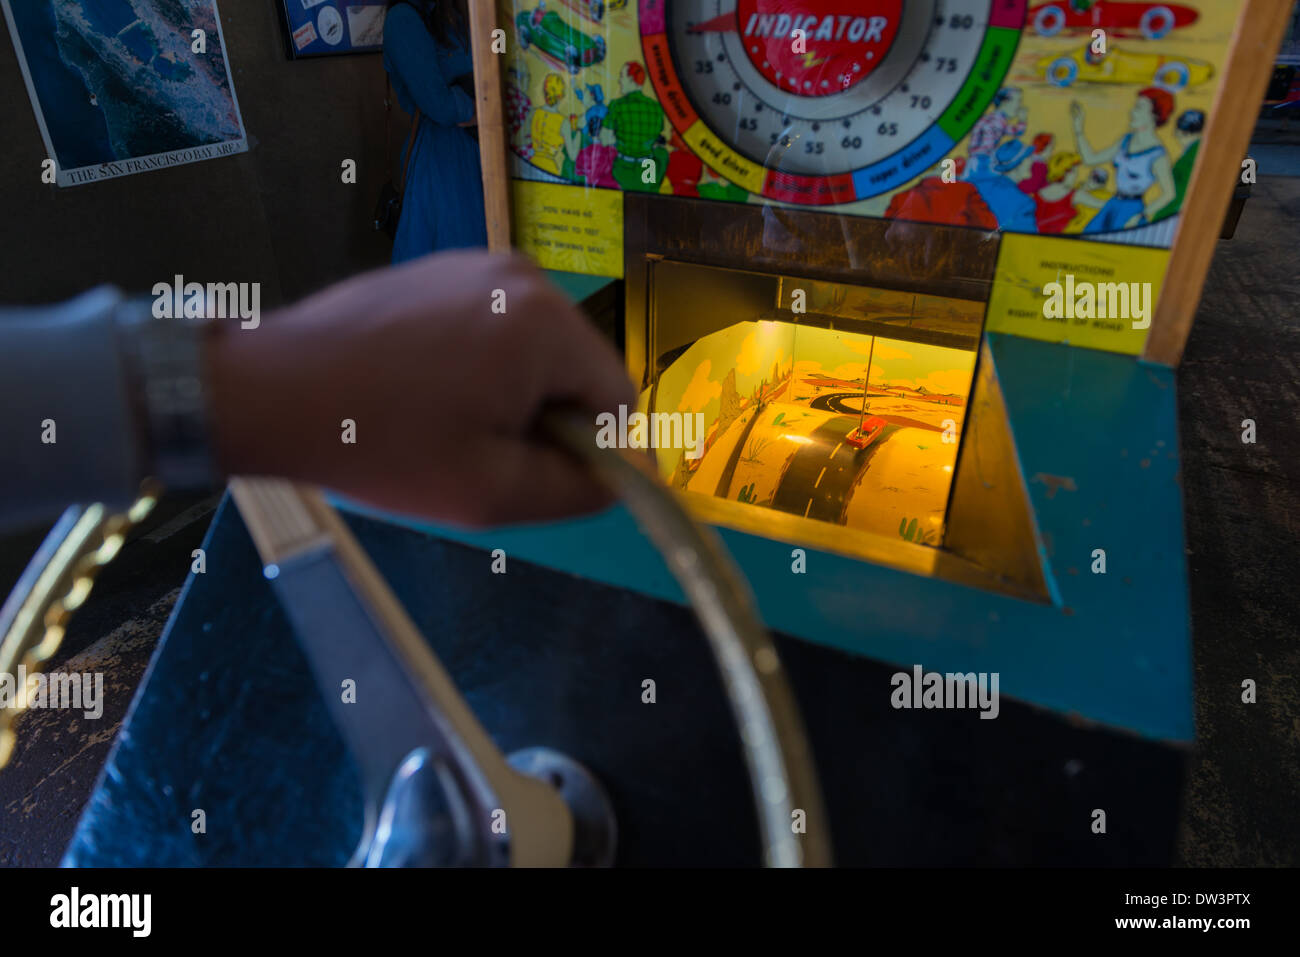 Coin-operated arcade machine in Musee Mecanique in Fisherman's Wharf, San Francisco - Stock Image